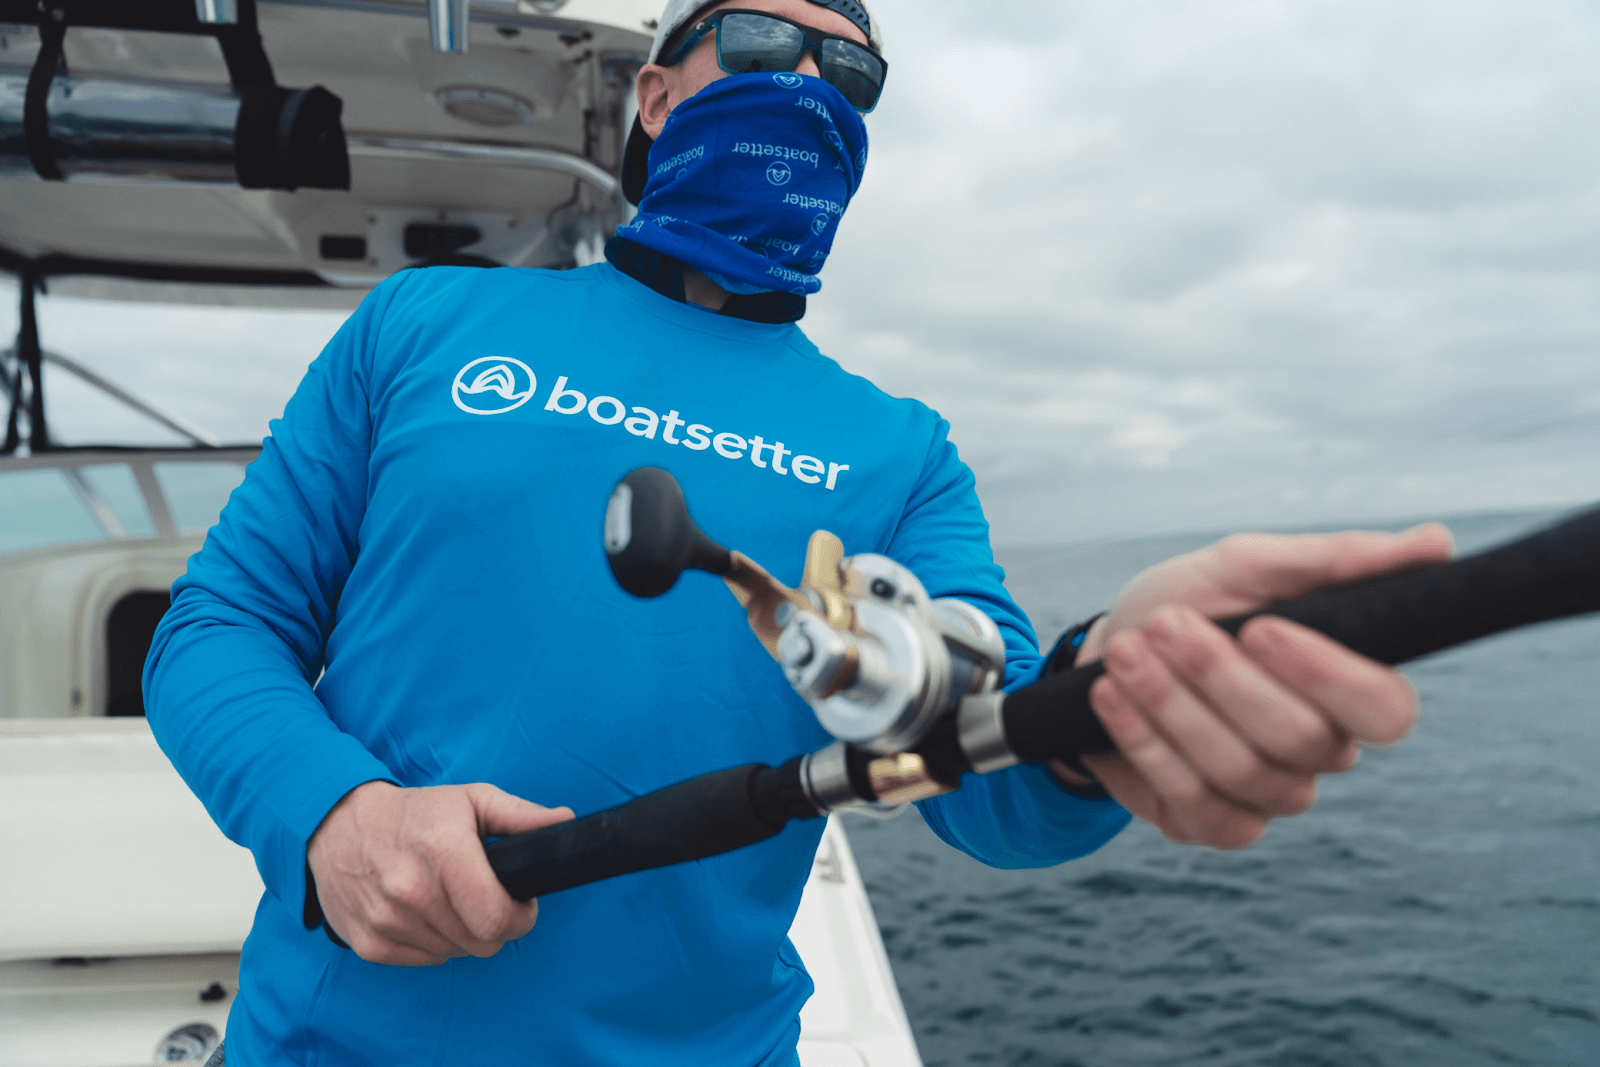 Why Boatsetter?